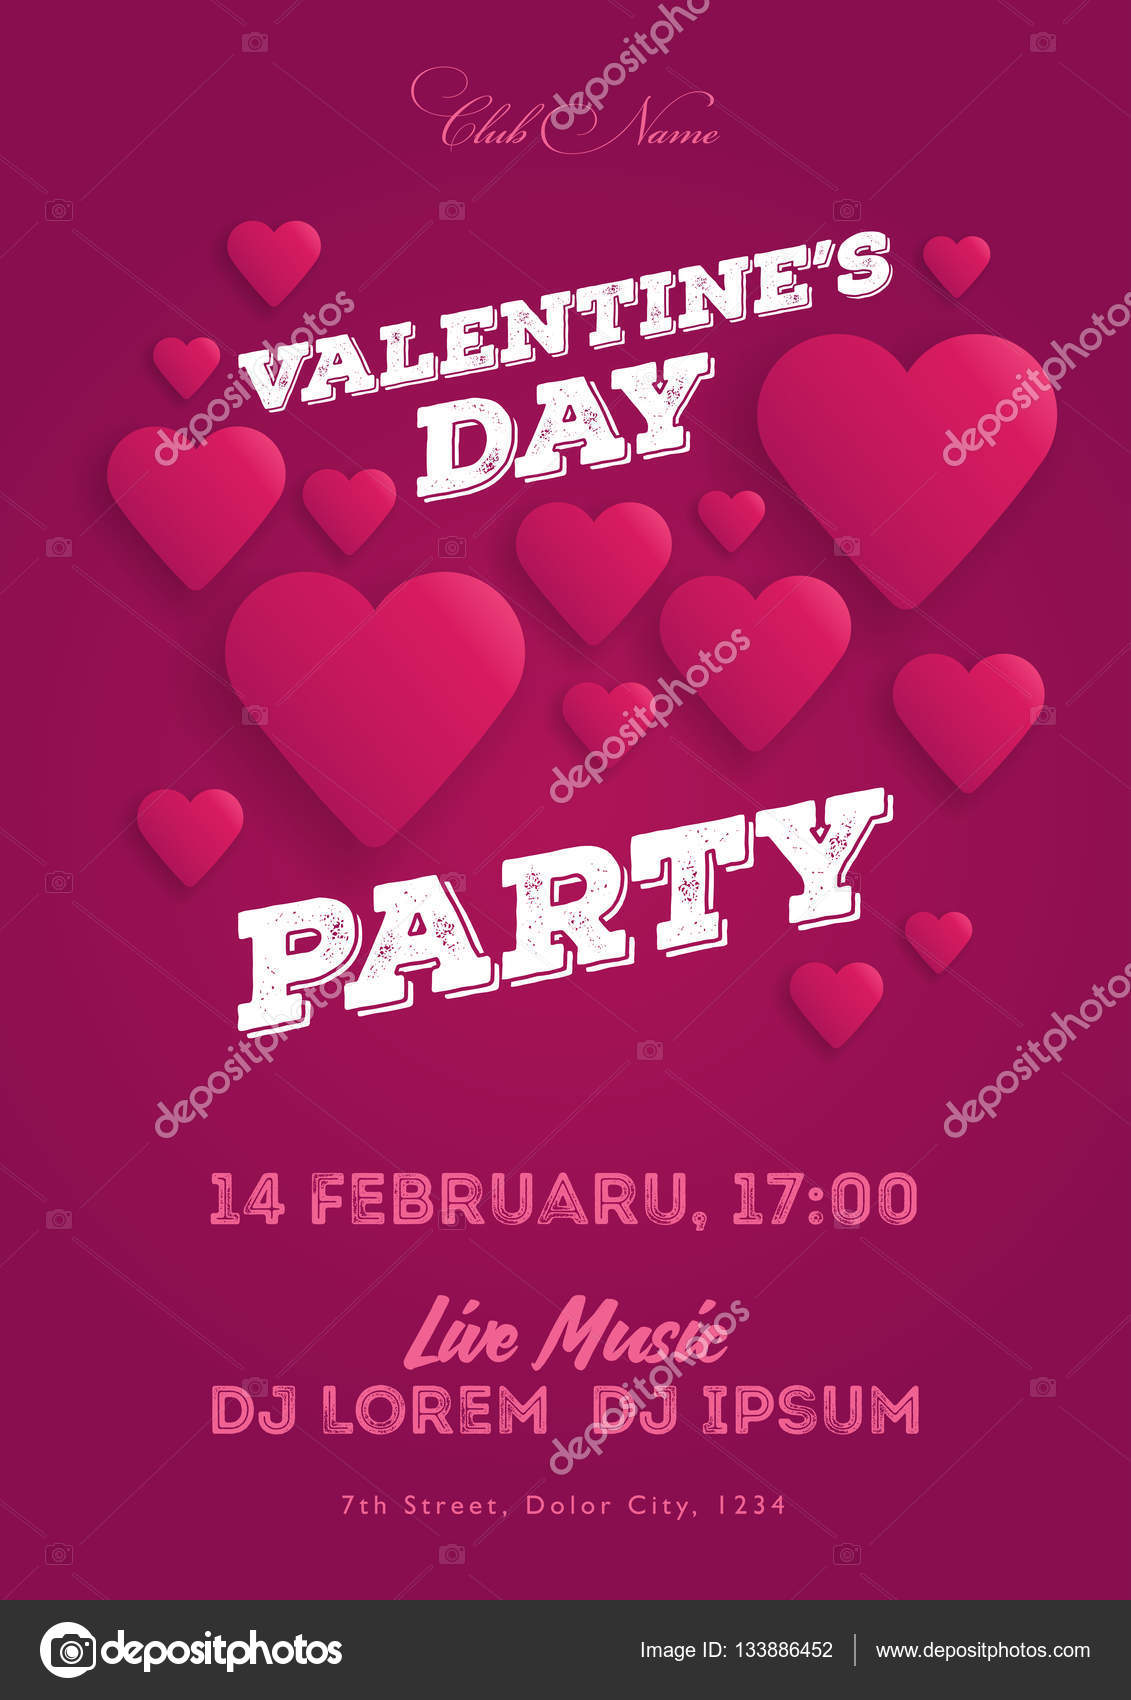 Valentines Day Party Invitation Flyer The Template For The Club